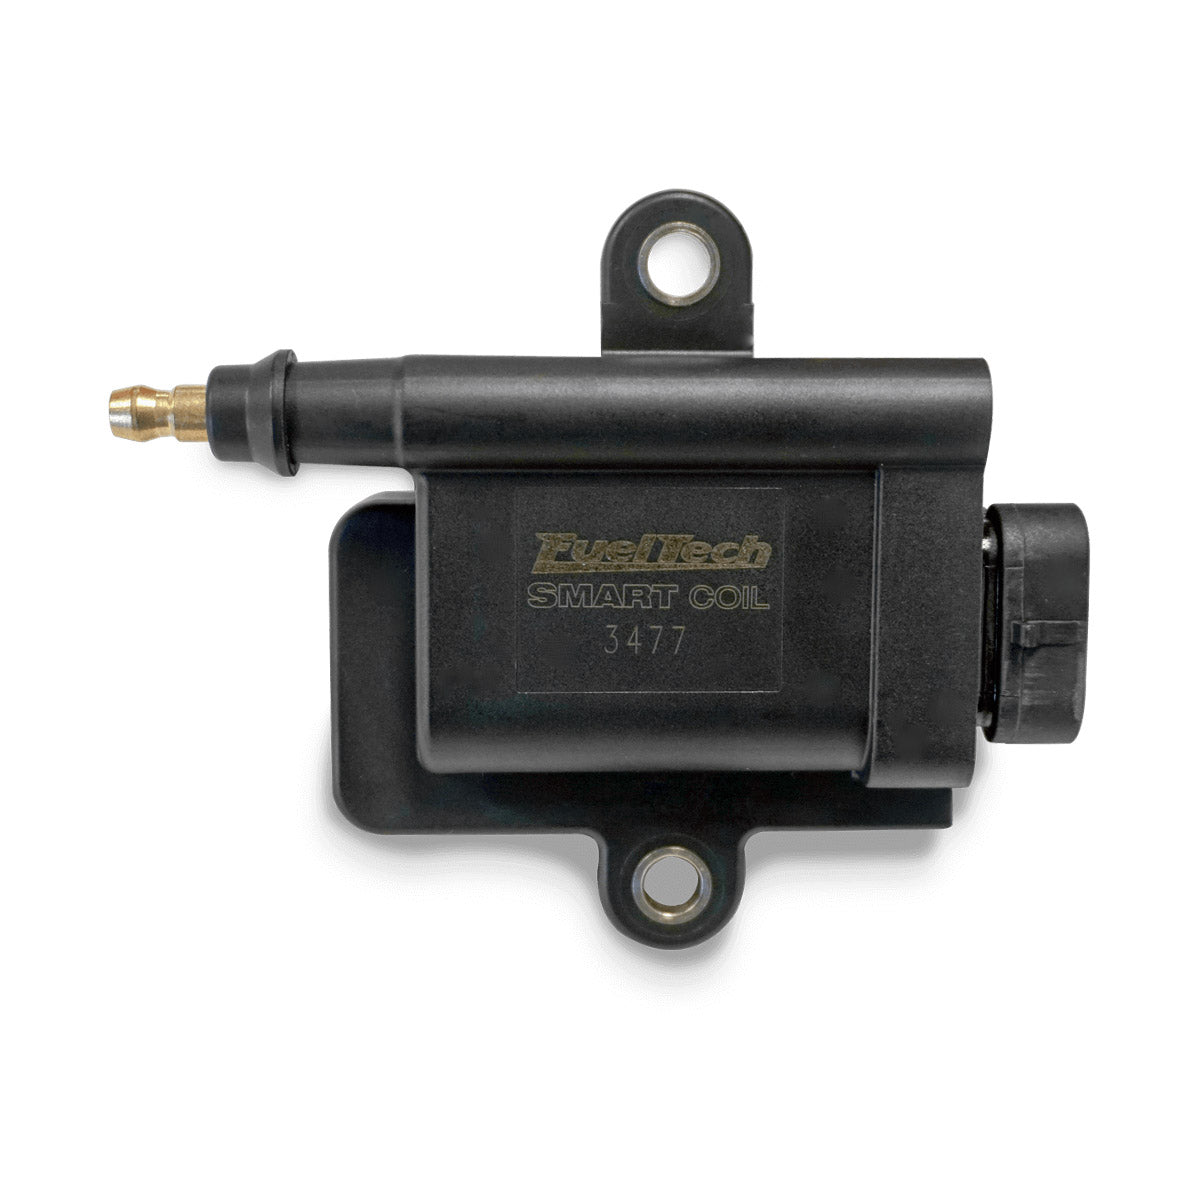 FUELTECH SMART IGNITION COIL